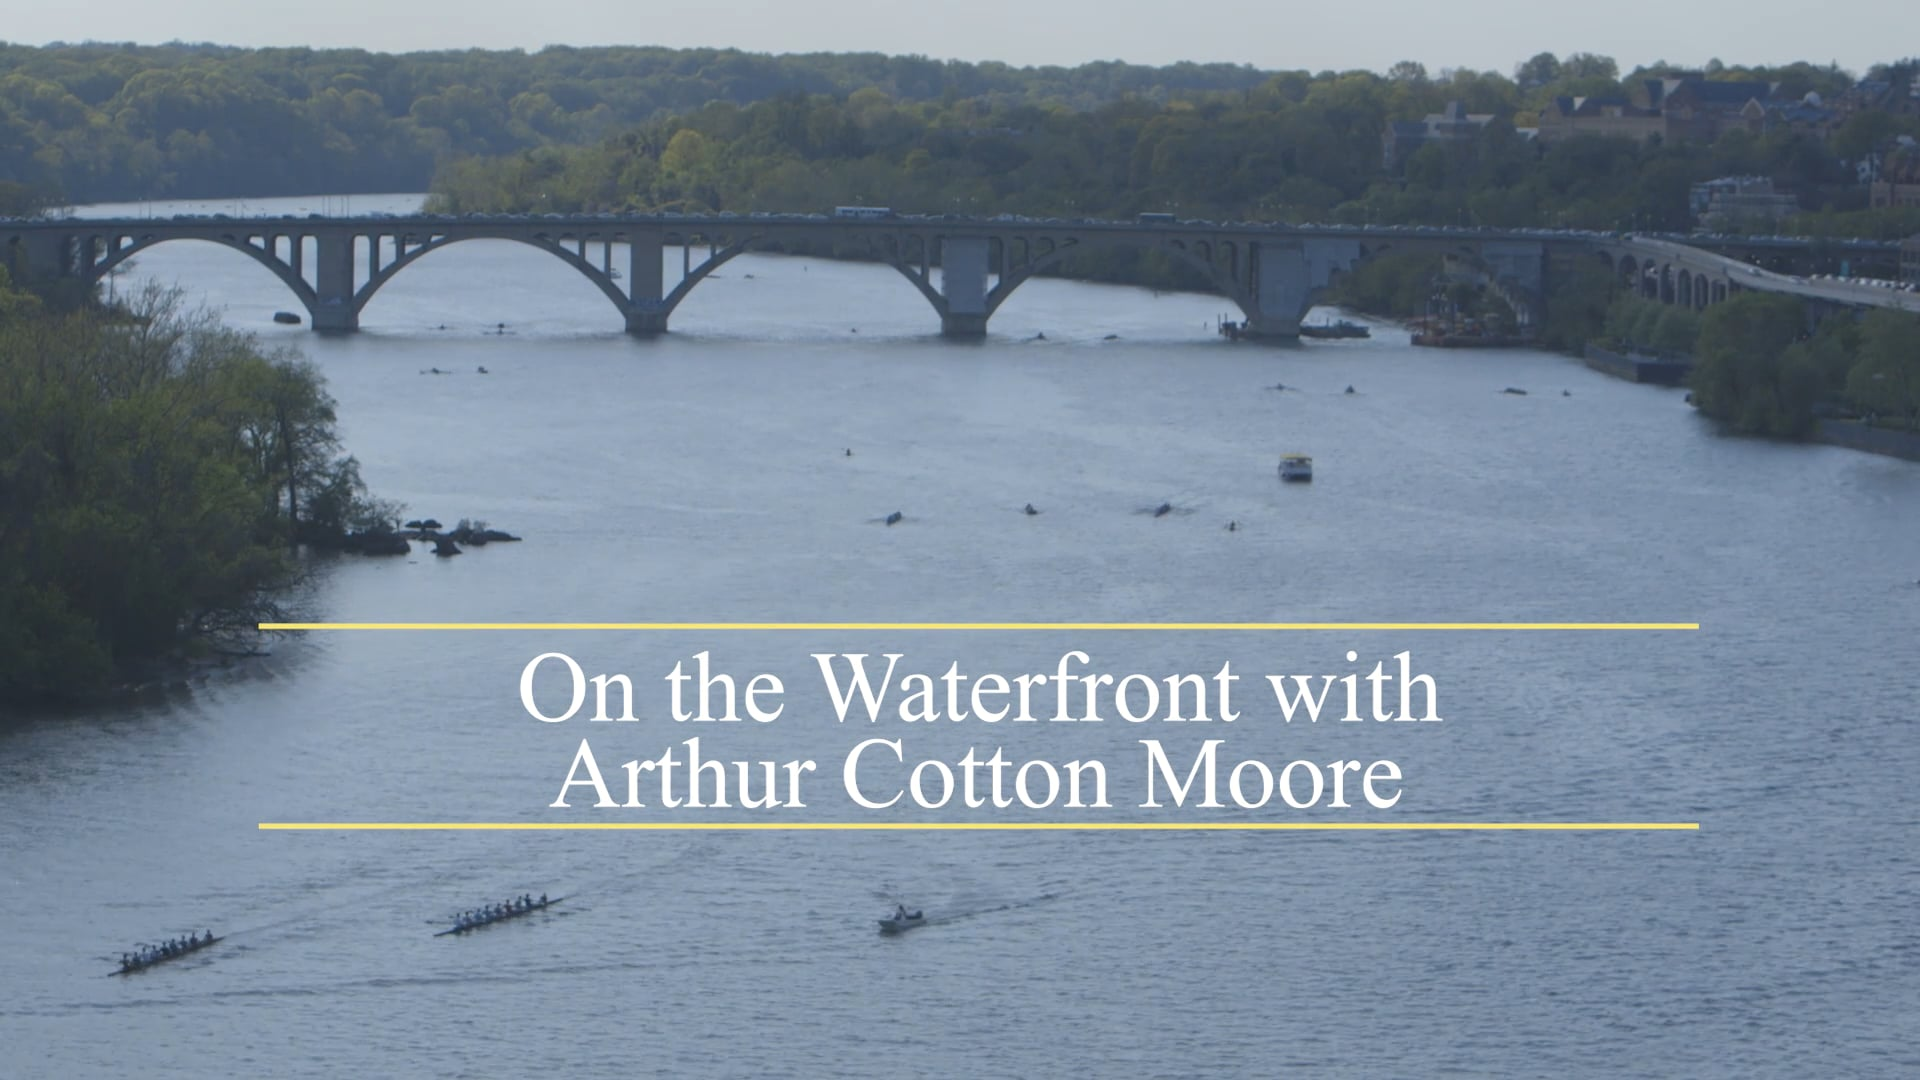 On the Waterfront with Arthur Cotton Moore